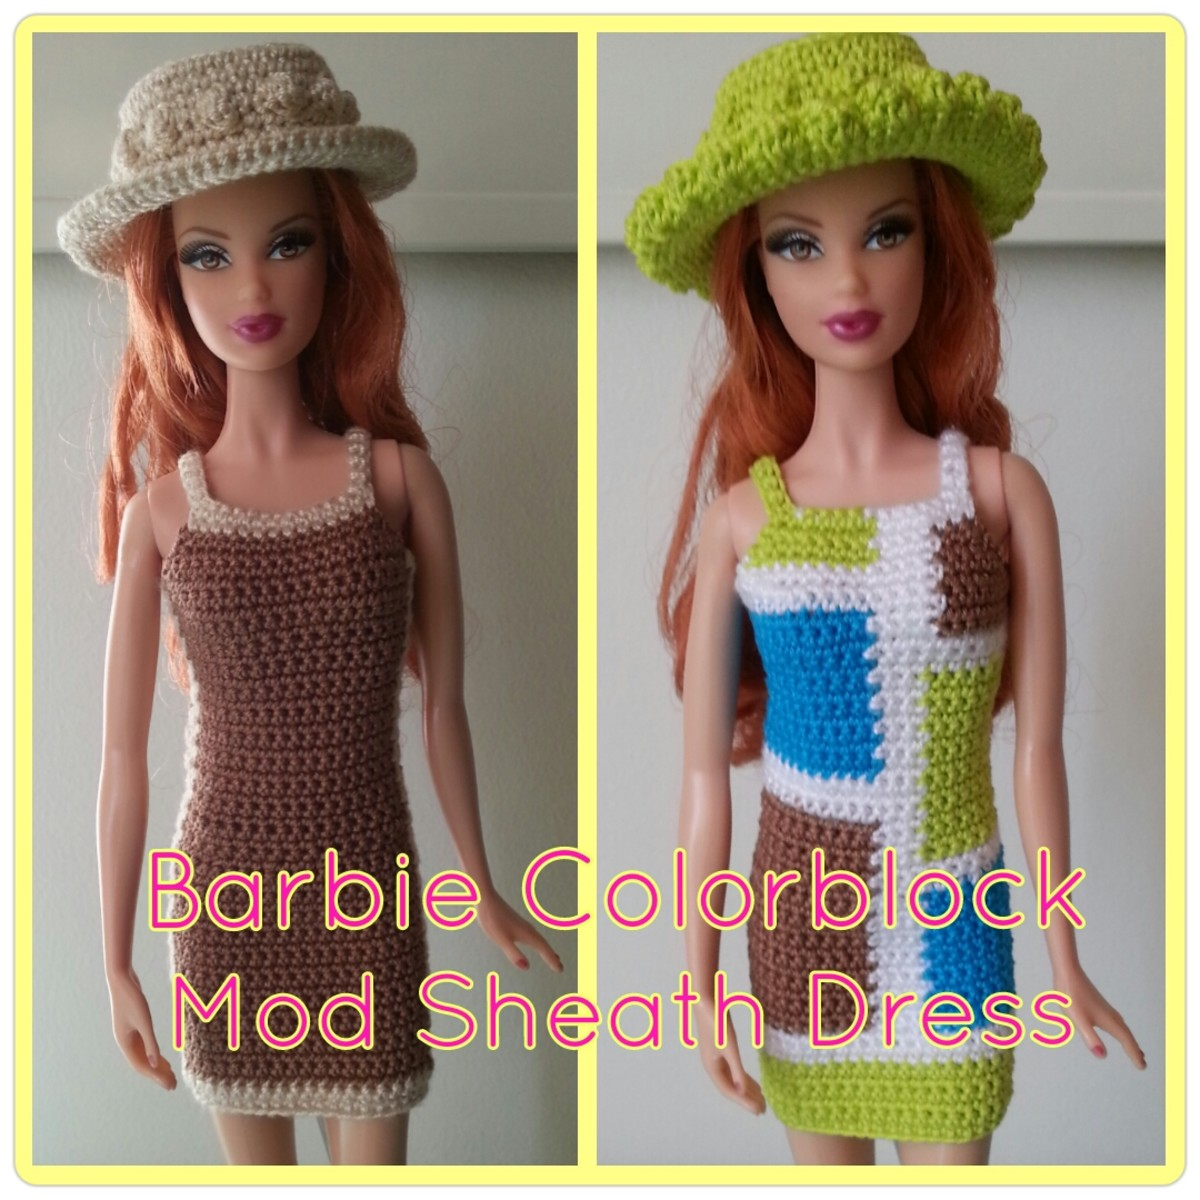 Barbie Colorblock Mod Sheath Dress (Free Crochet Pattern)